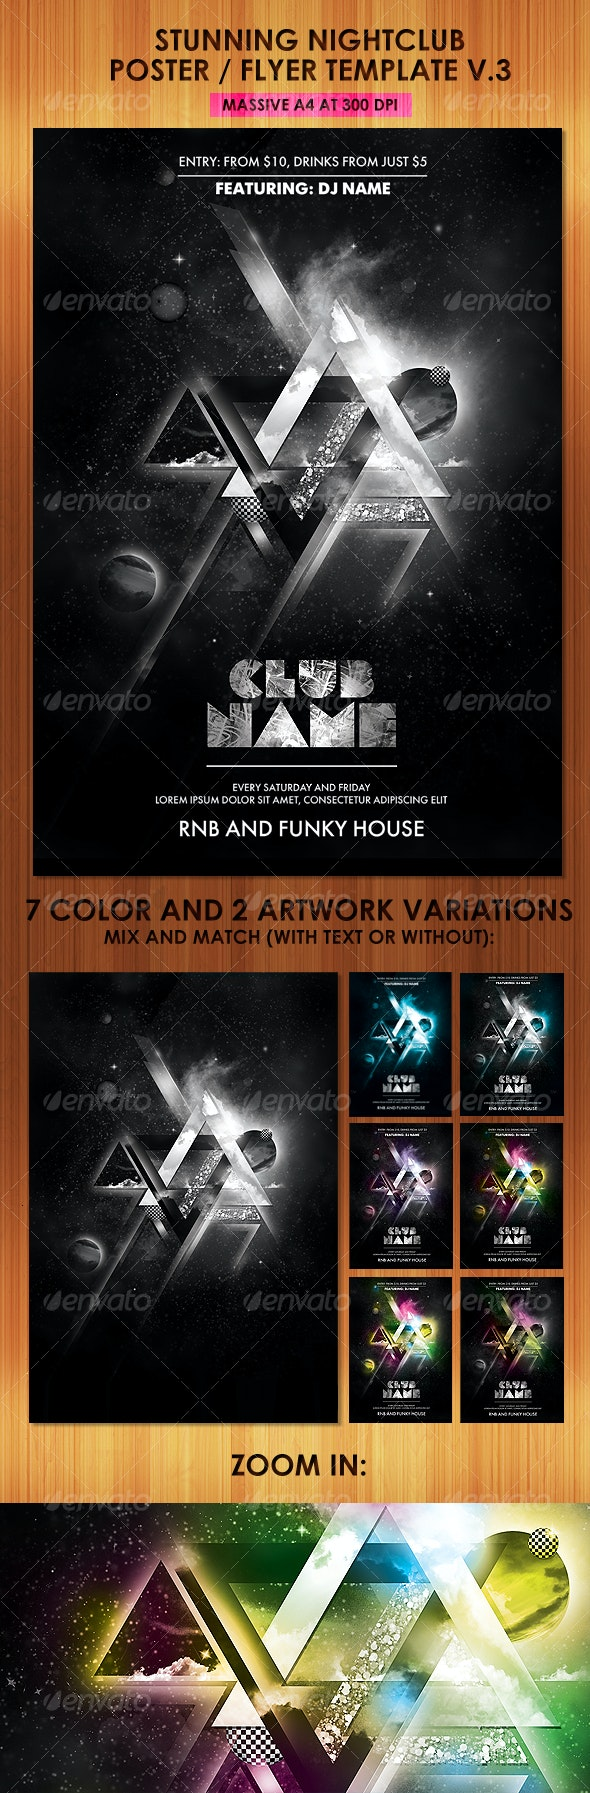 Stunning Nightclub Poster Flyer Template v3 - Clubs & Parties Events